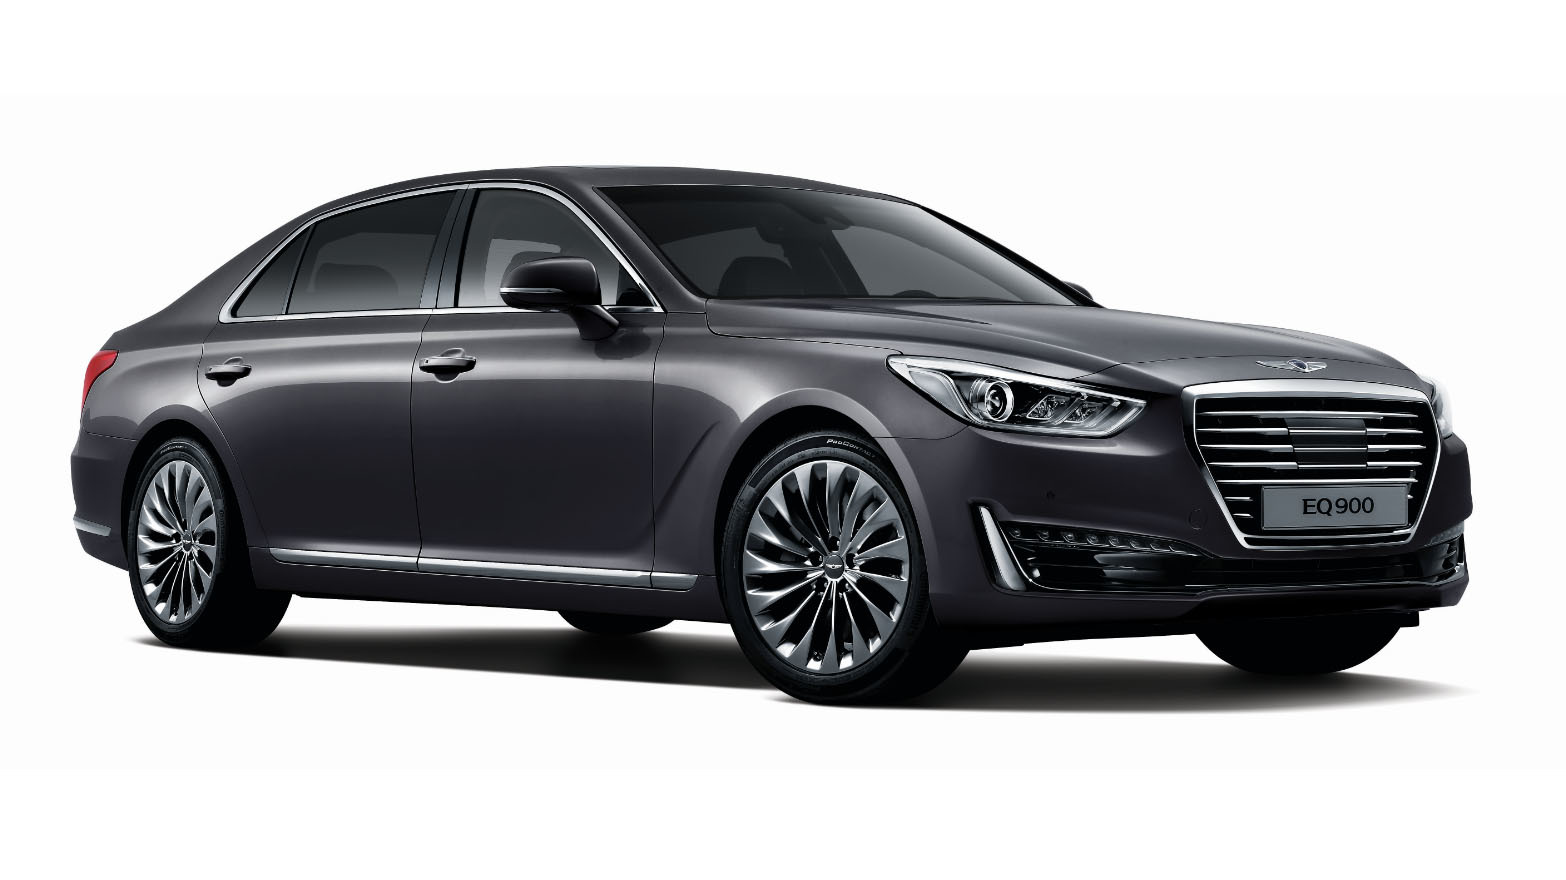 2017 genesis g90 by hyundai 7 egmcartech. Black Bedroom Furniture Sets. Home Design Ideas